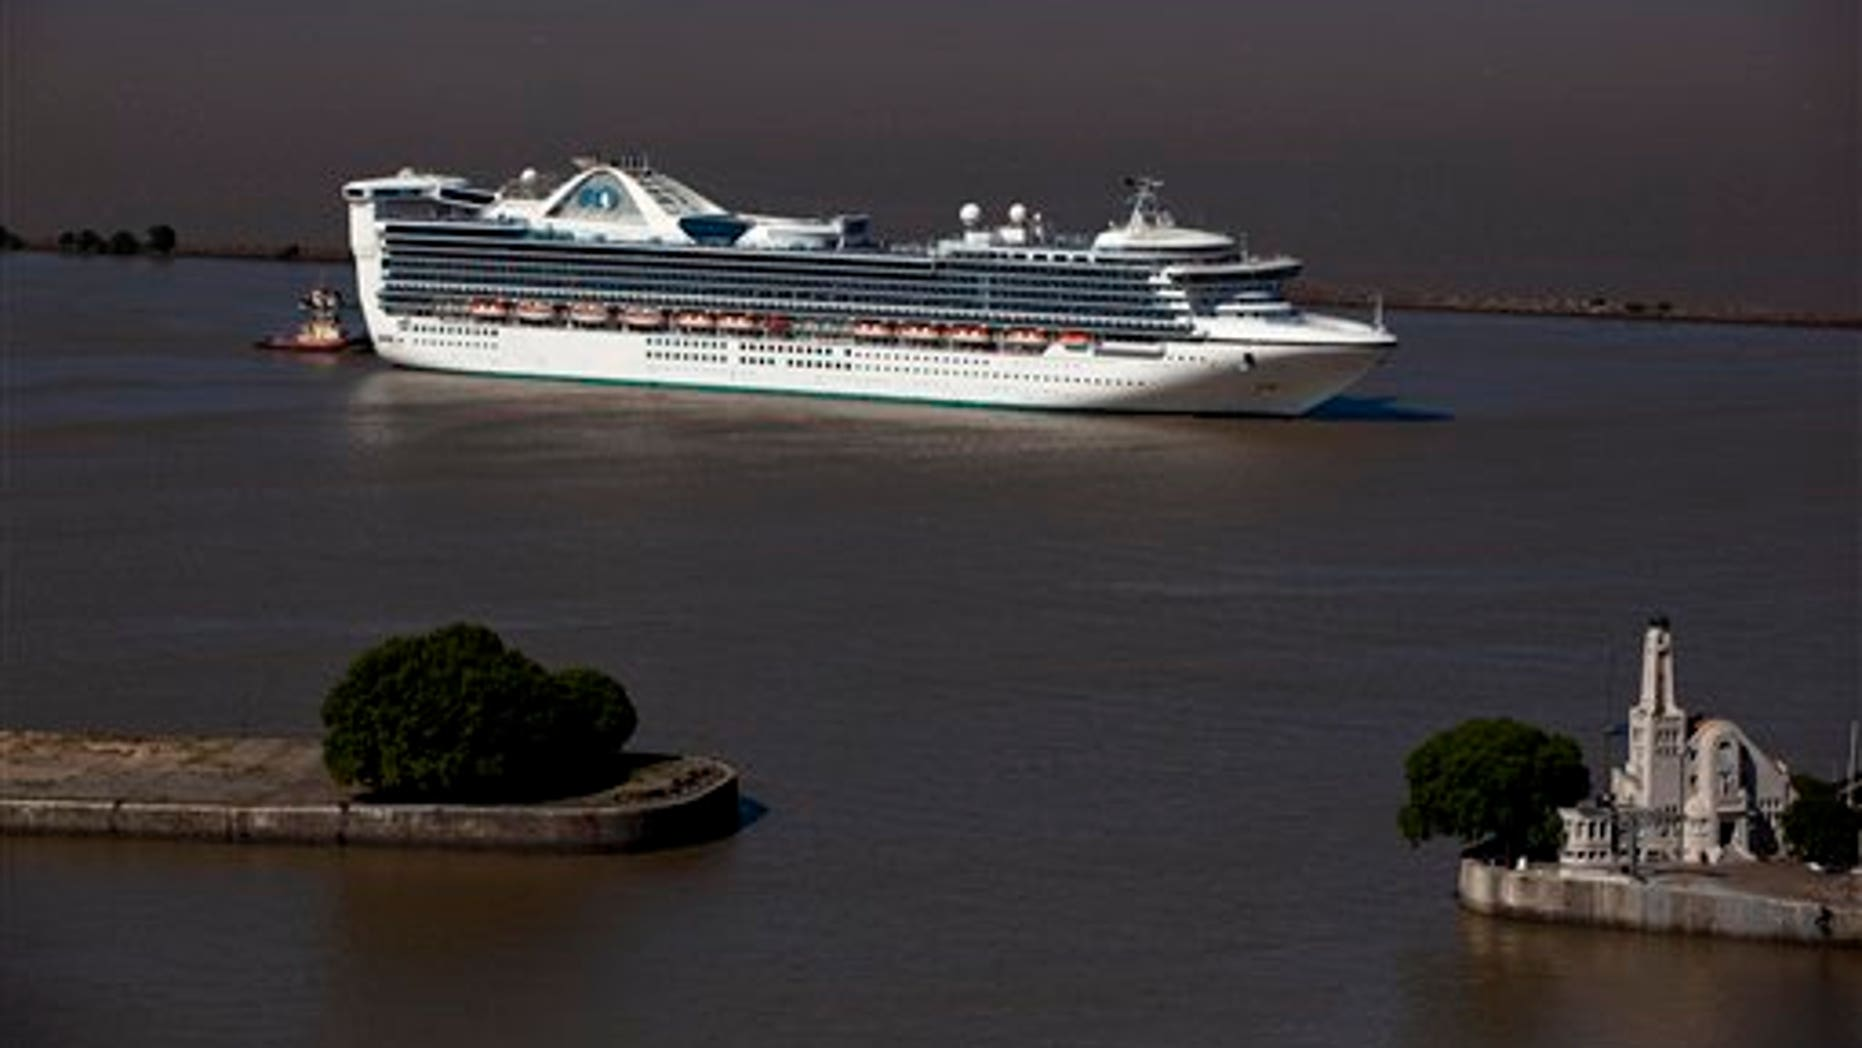 Jan. 17: The Star Princess cruise ship leaves Buenos Aires' port in Argentina.